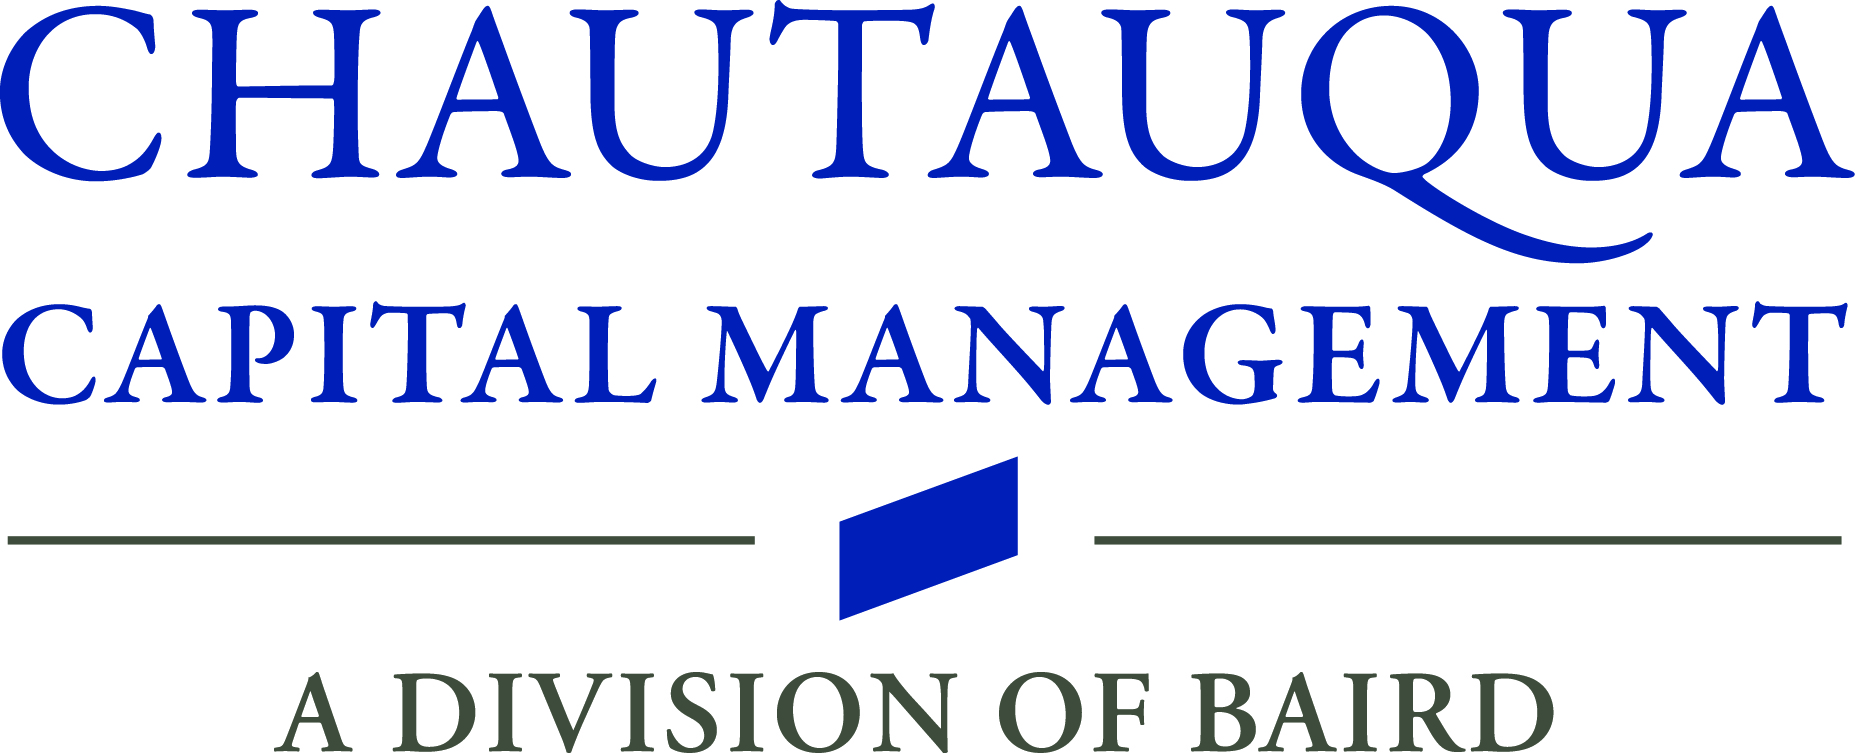 Chautauqua Capital Management – A Division of Baird